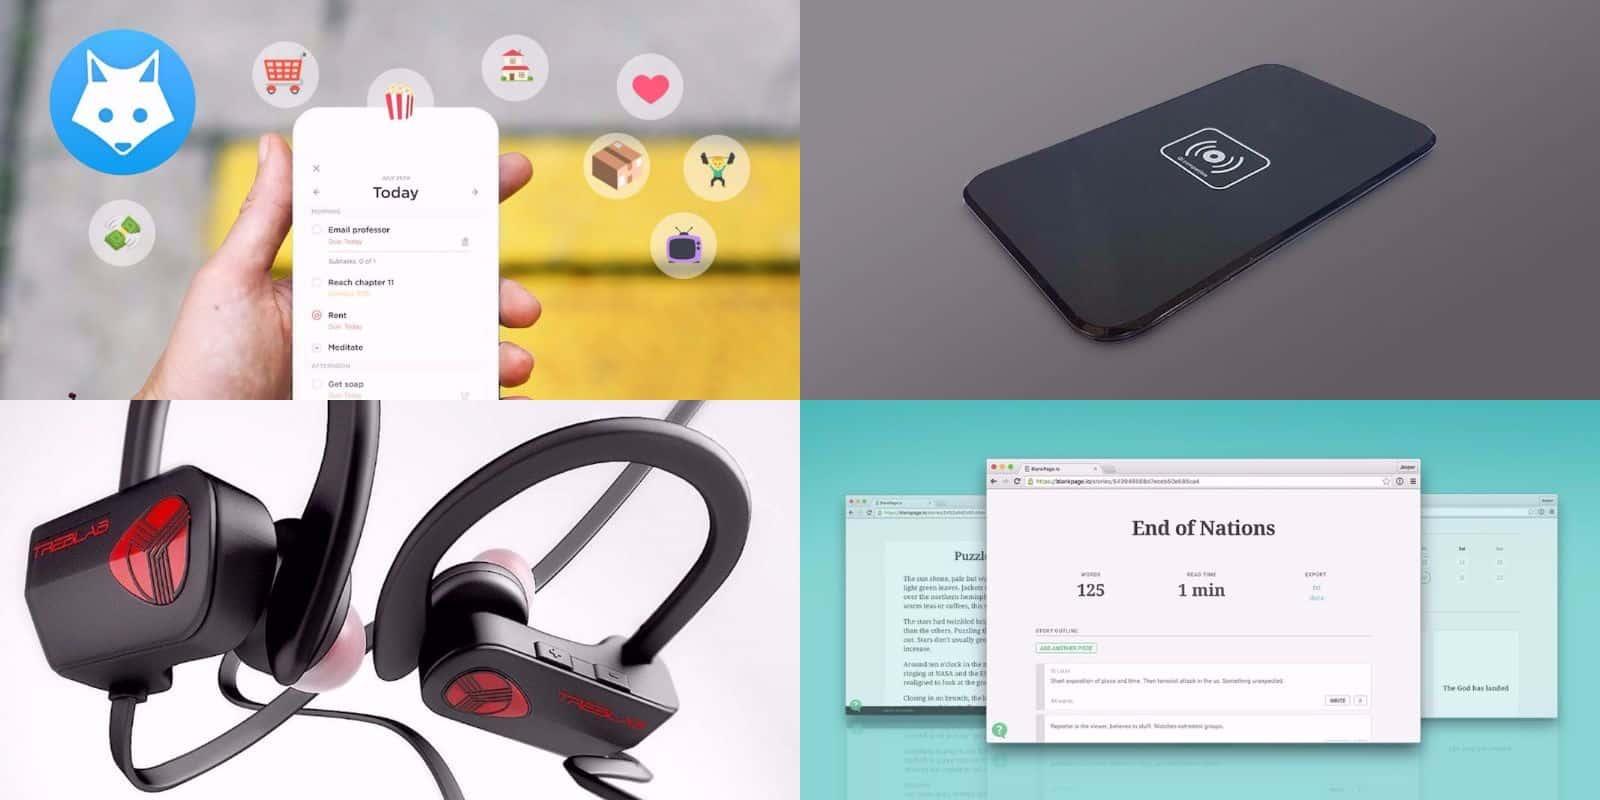 Wireless charging, distraction-free writing, and more are part of this week's best deals.